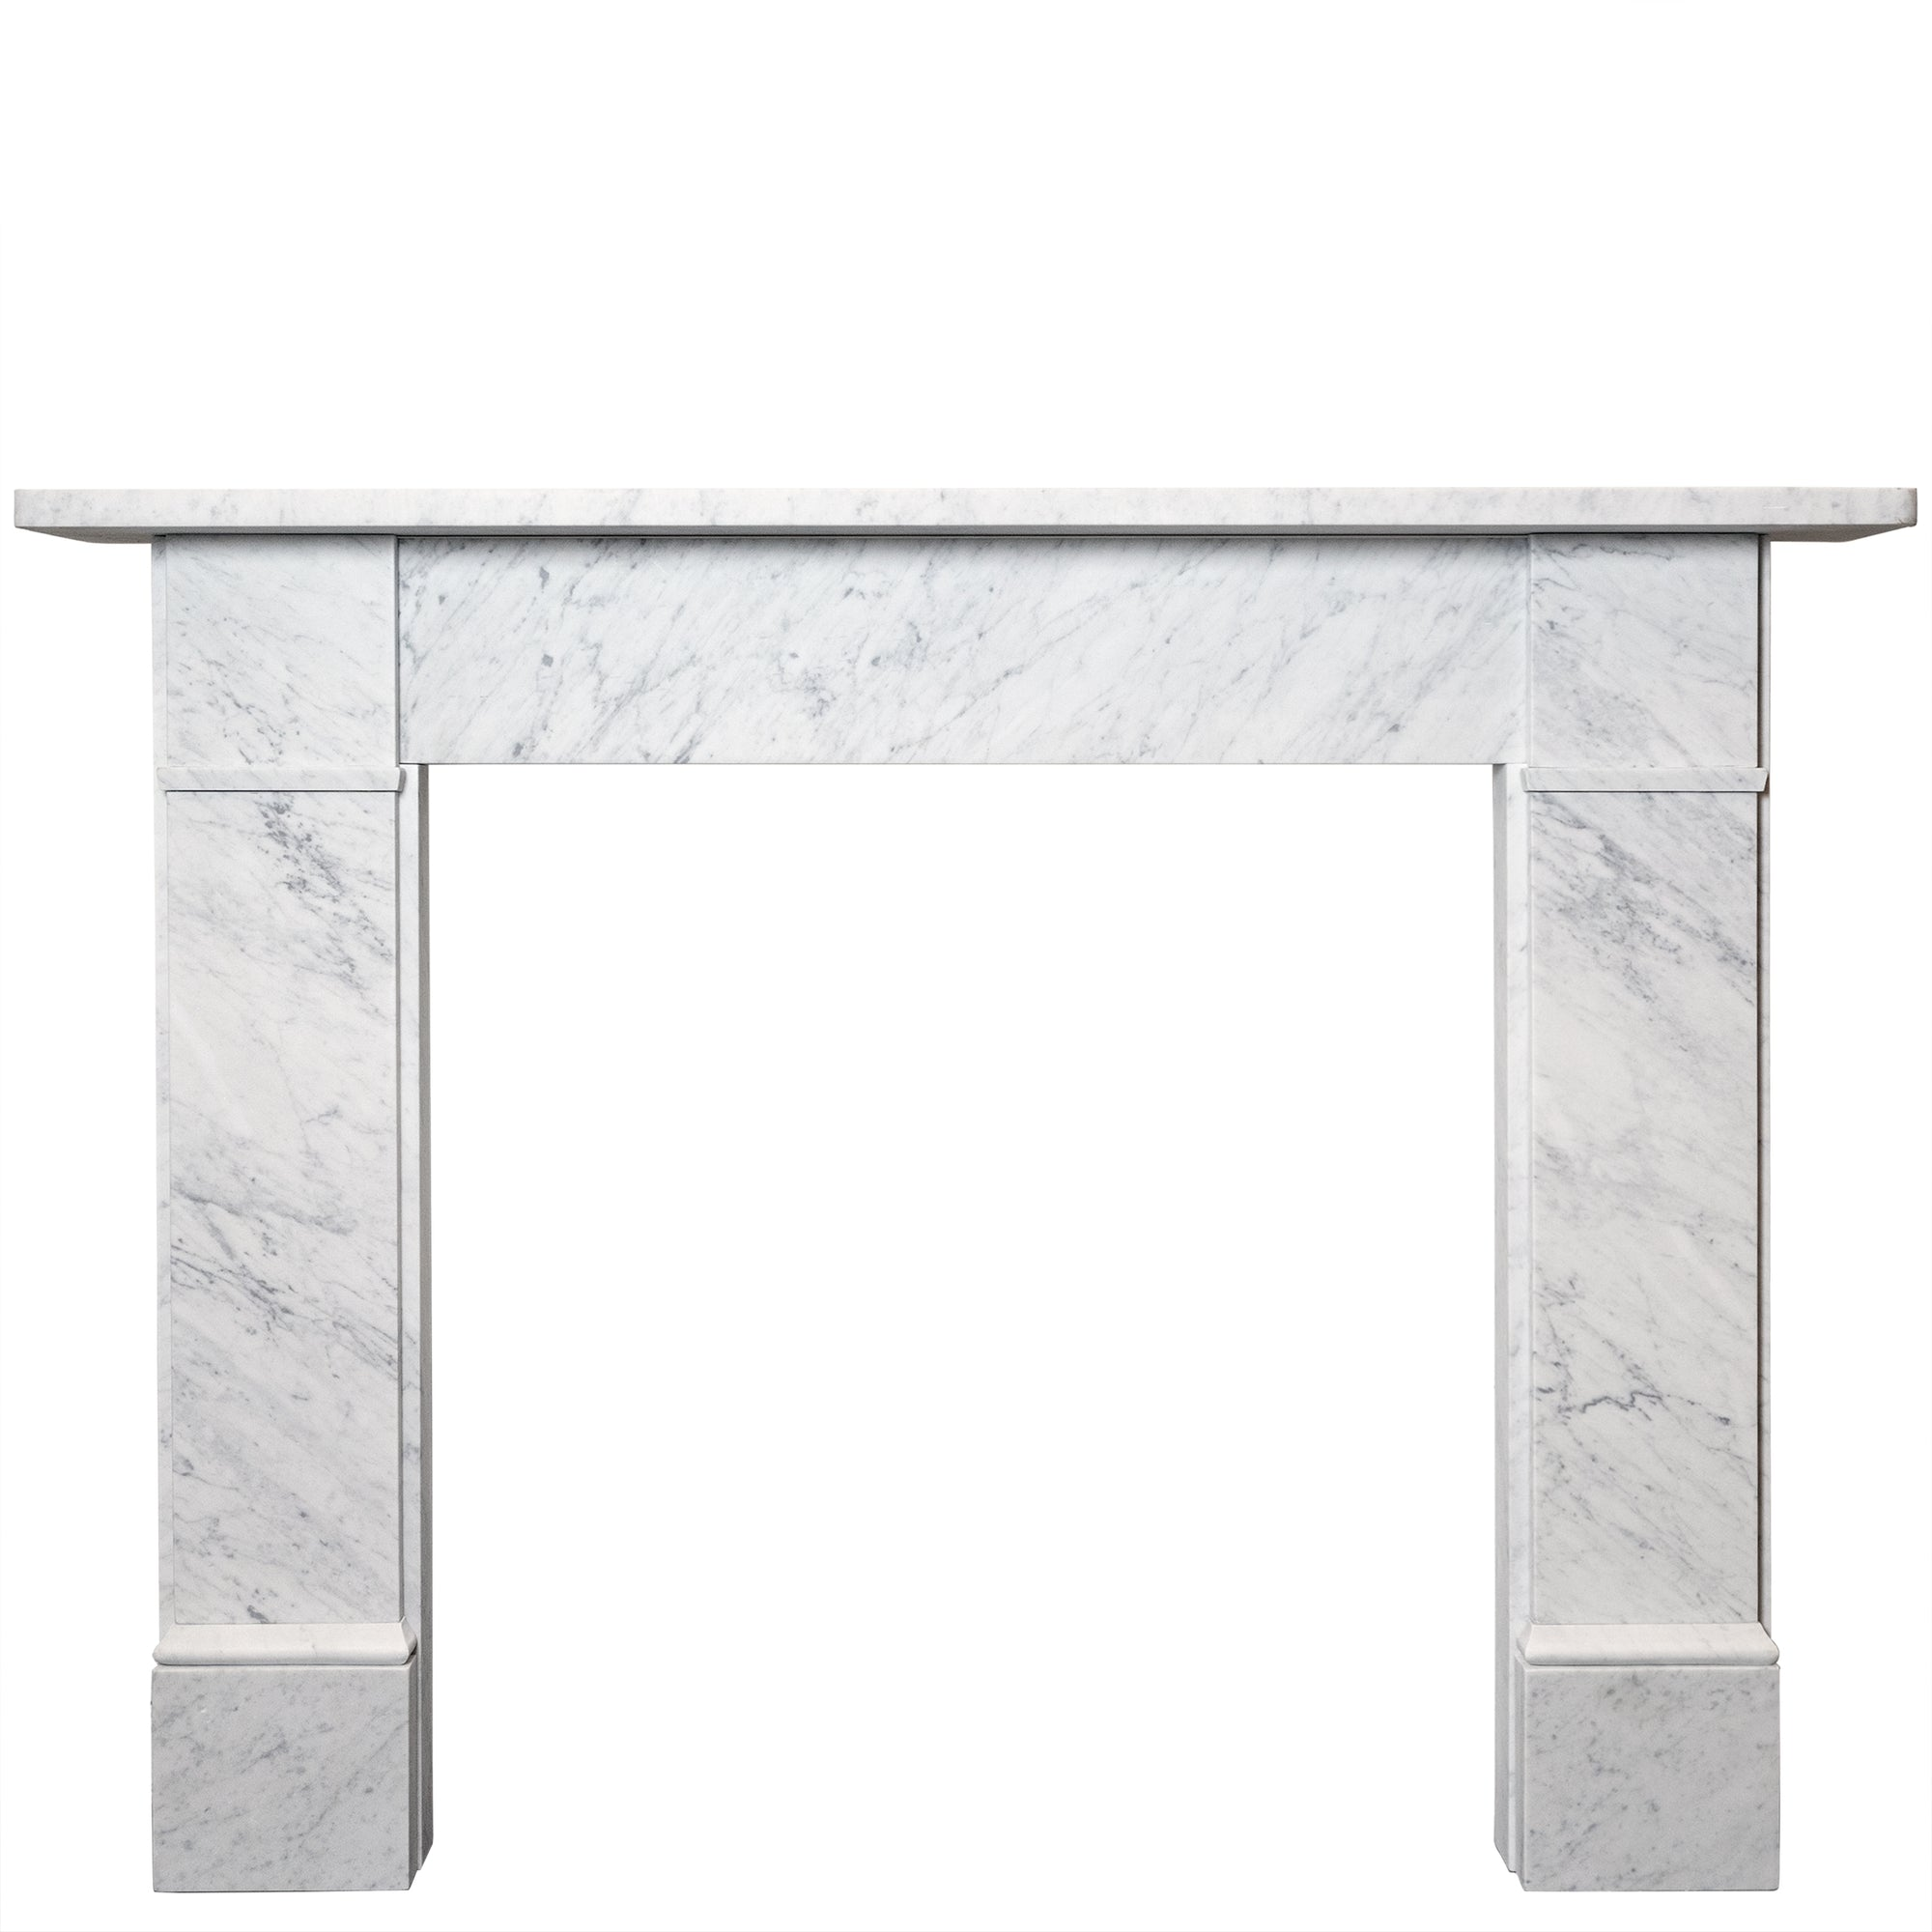 Georgian Style Carrara Marble Chimneypiece | The Architectural Forum